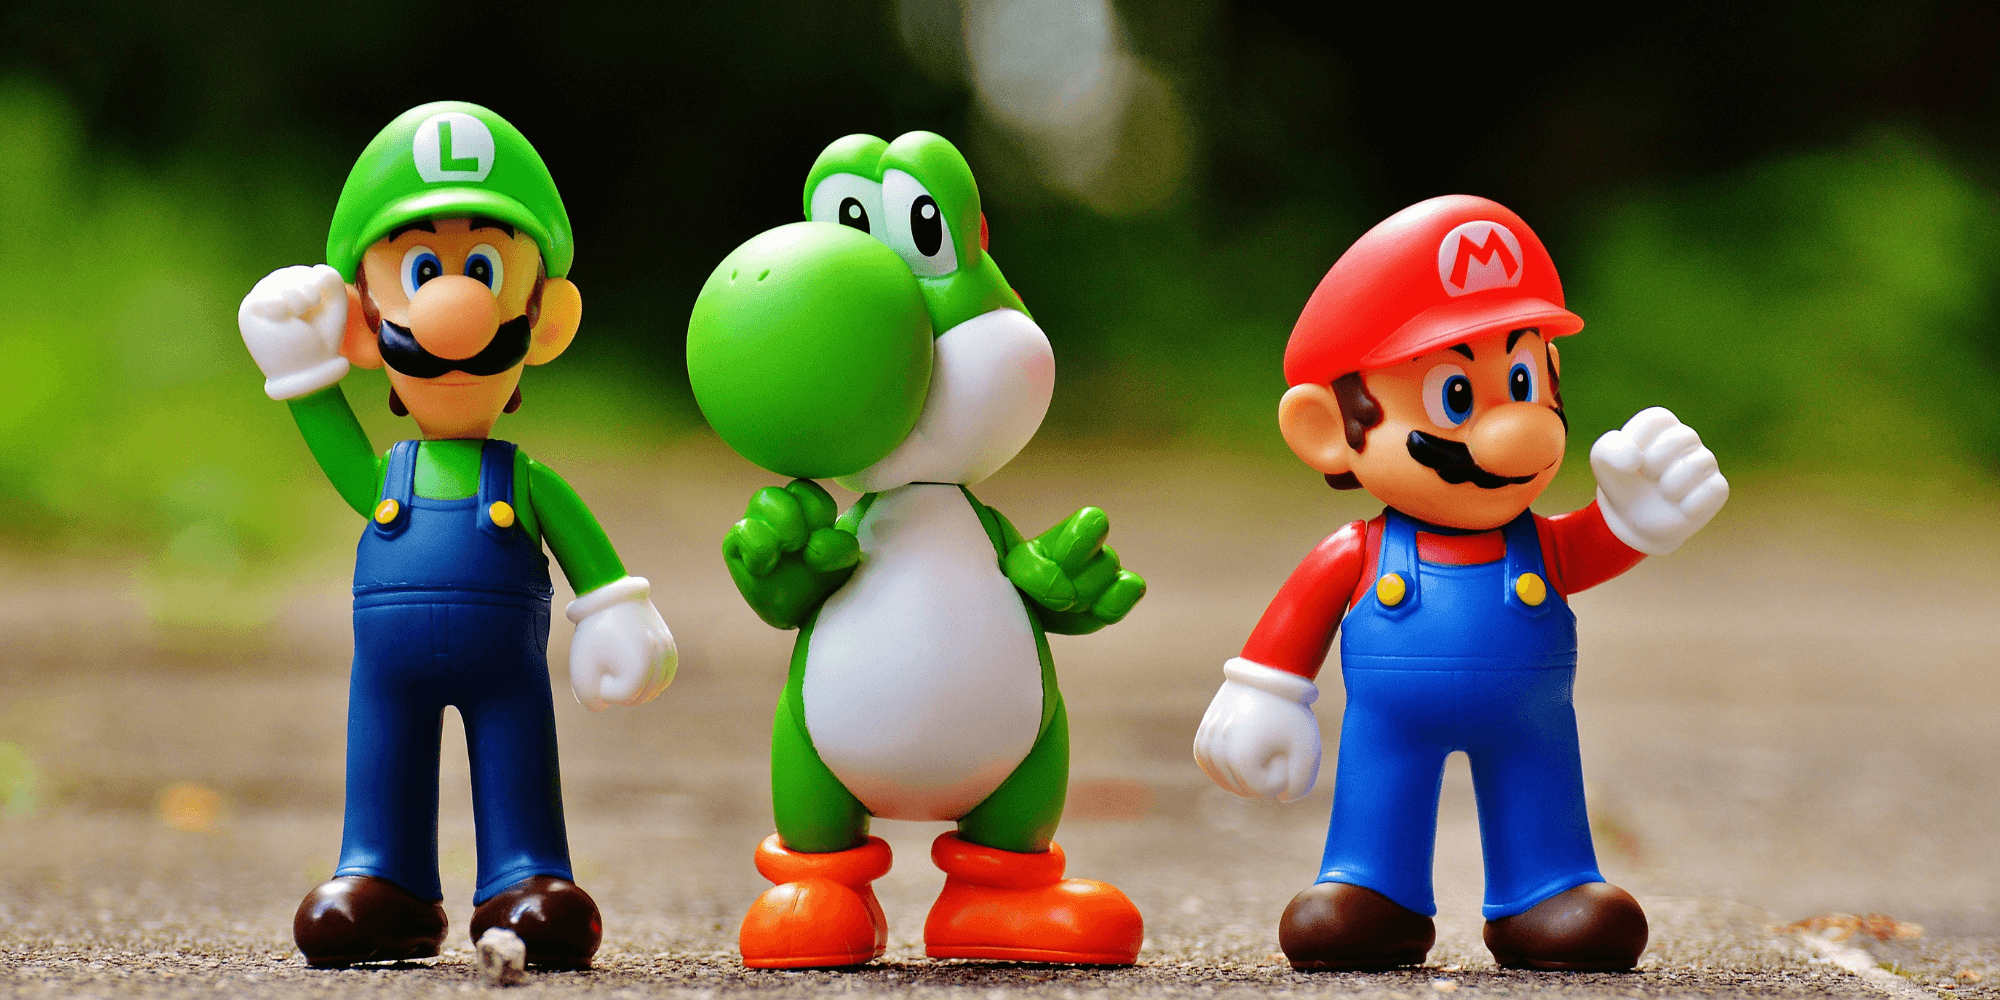 Mario, Luigi and Toad standing up